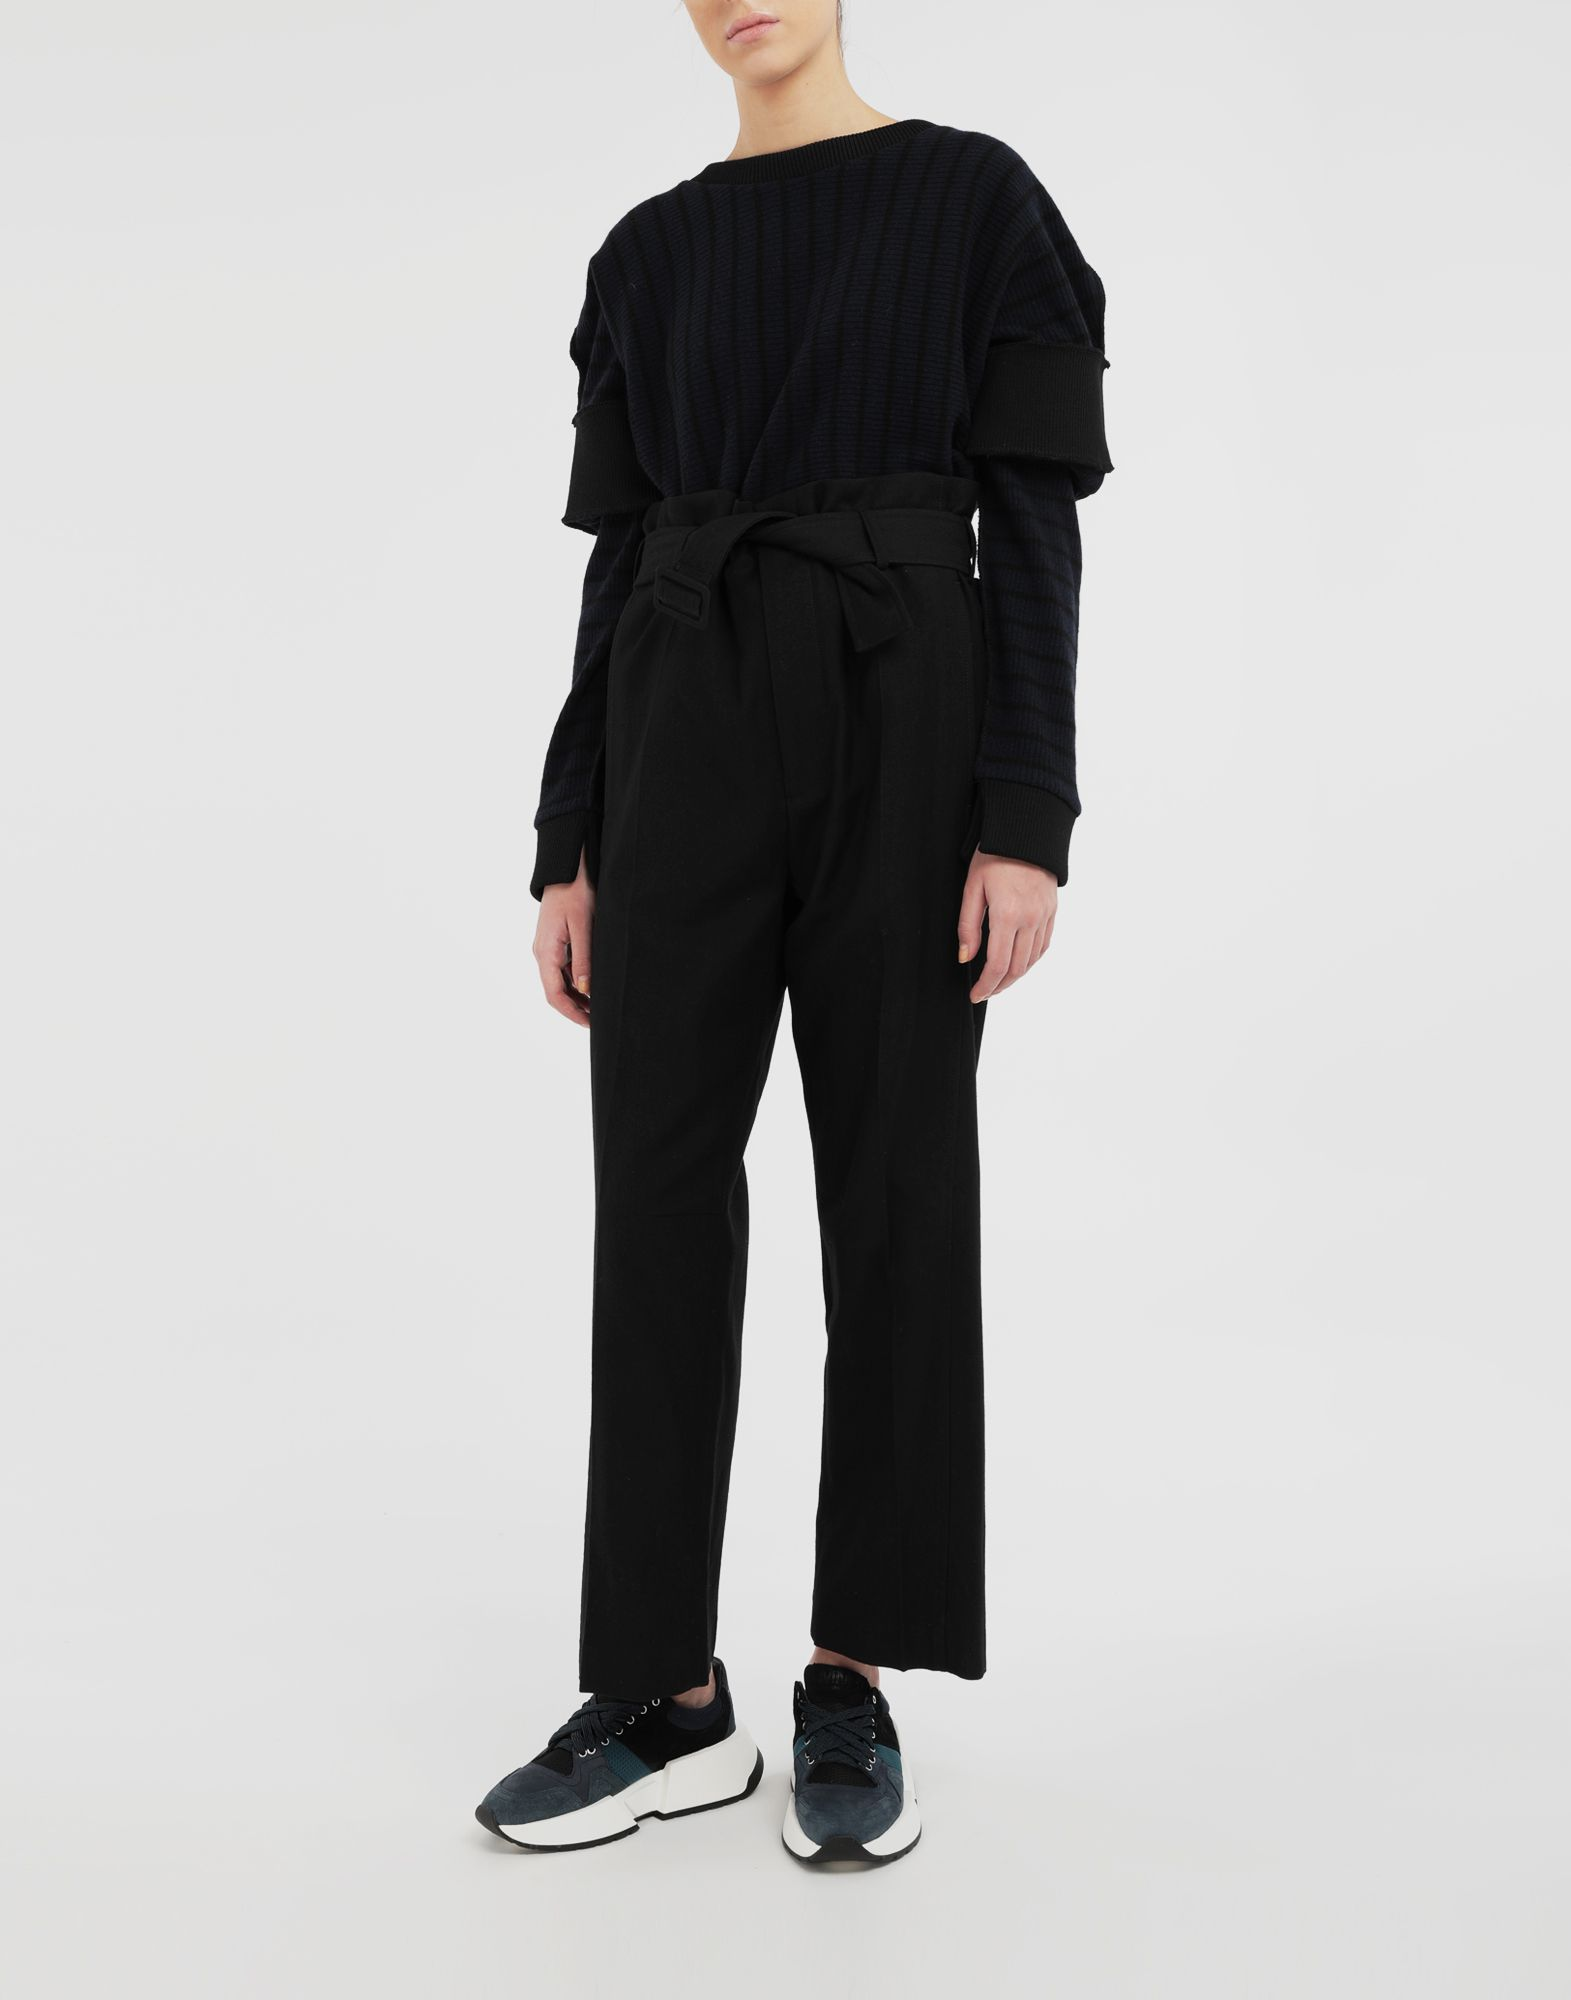 MM6 MAISON MARGIELA Tailored trousers Casual pants Woman d